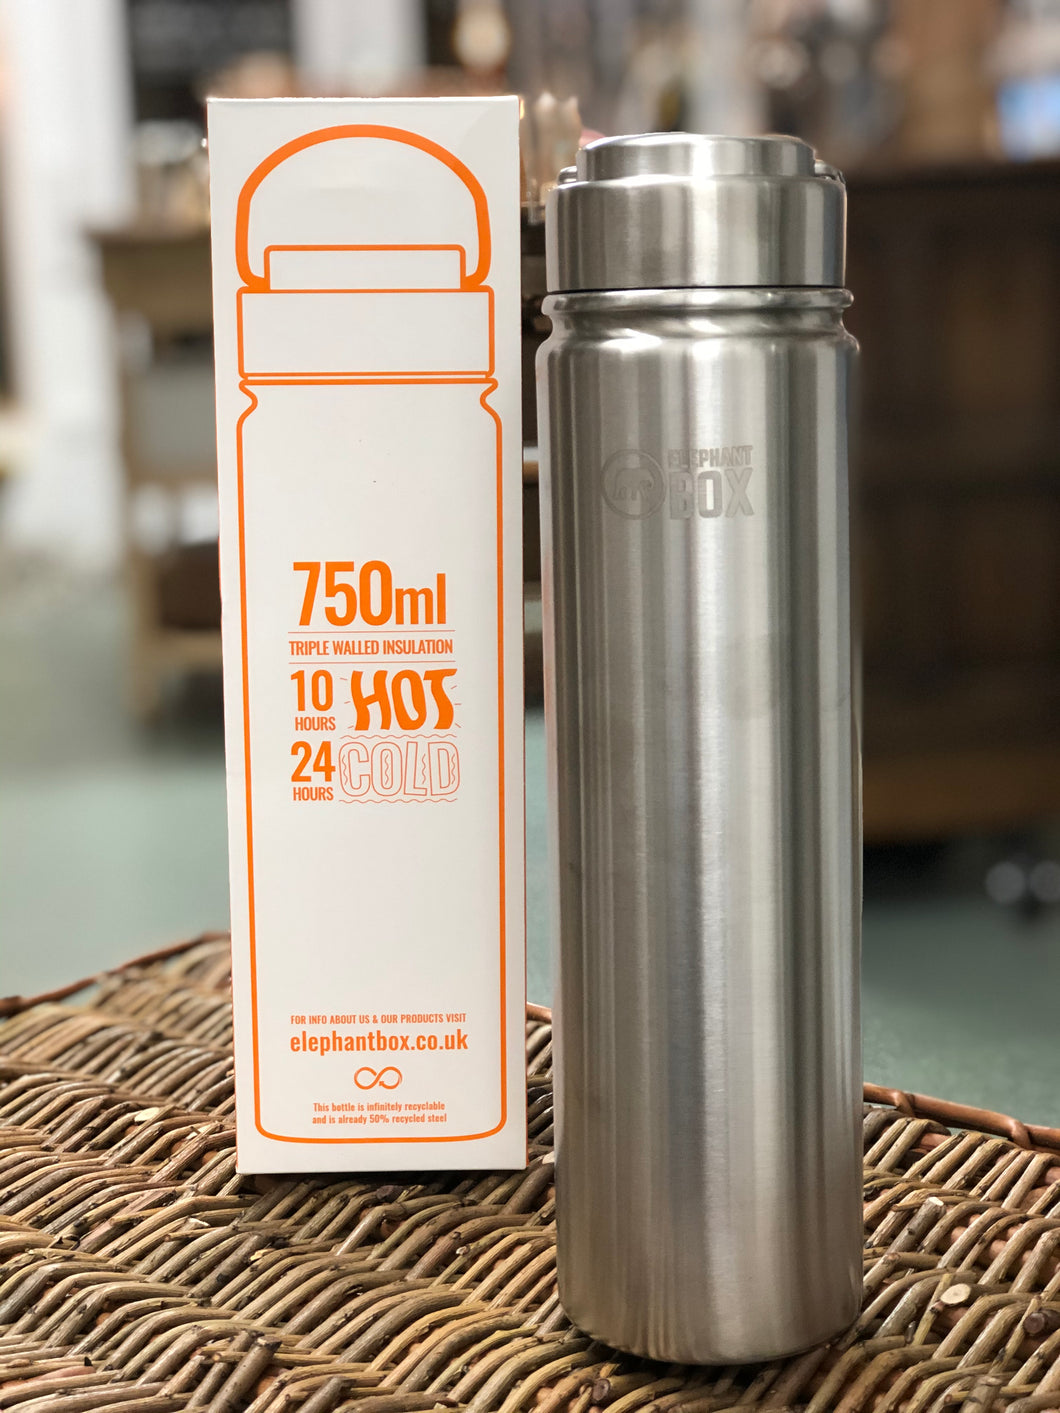 Elephant Box  - Stainless Steel Insulated Flask 750ml - stays hot up to 10 hours